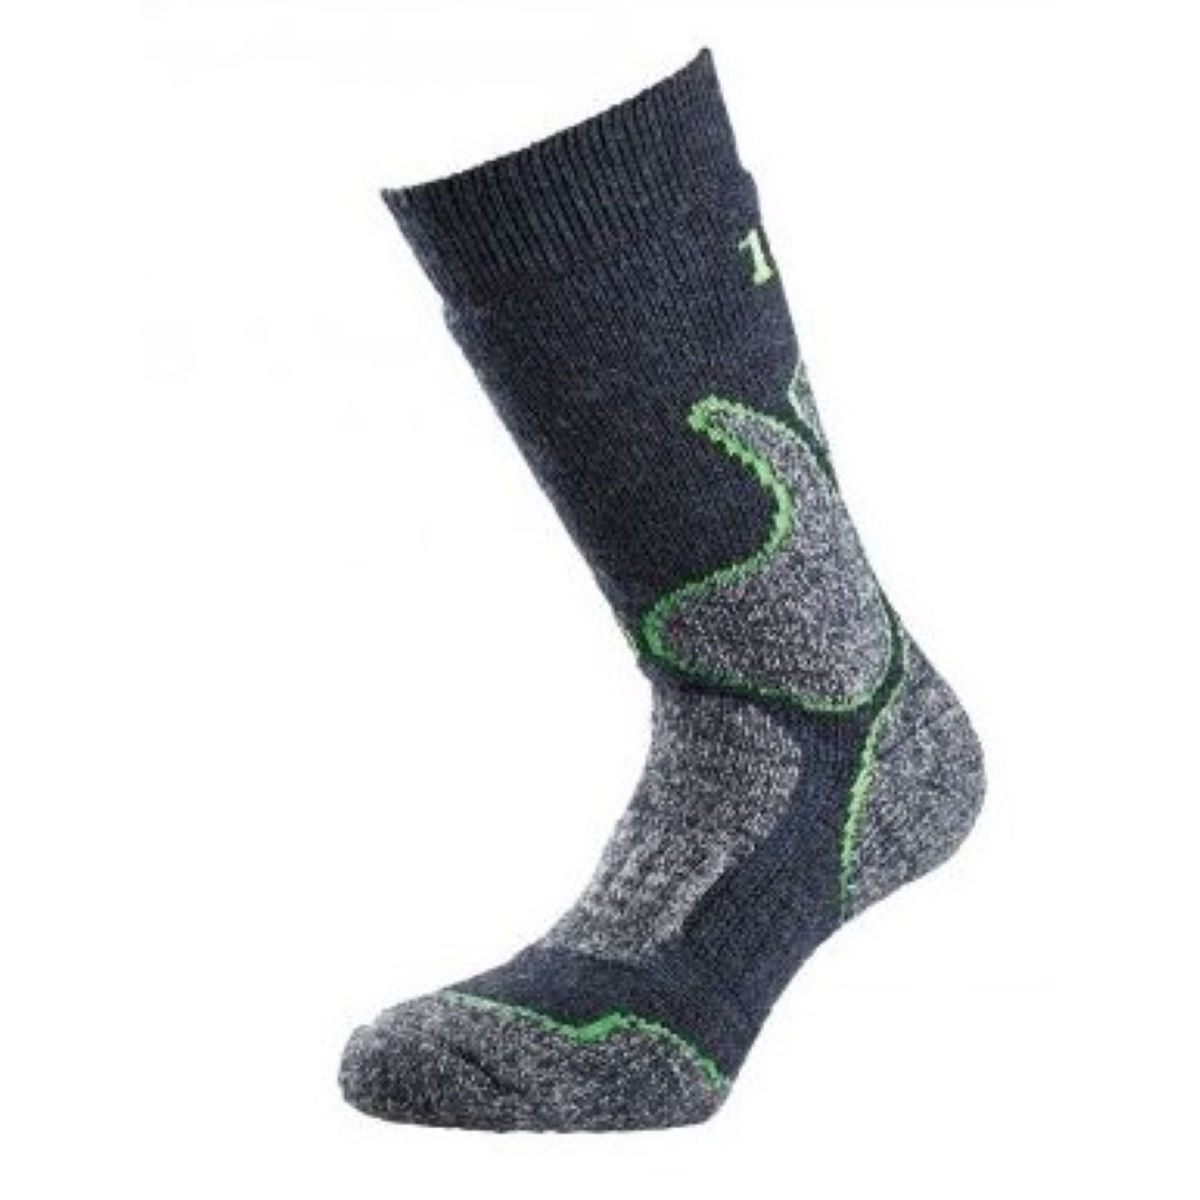 1000 Mile Women's 4 season Walk Sock - Calcetines